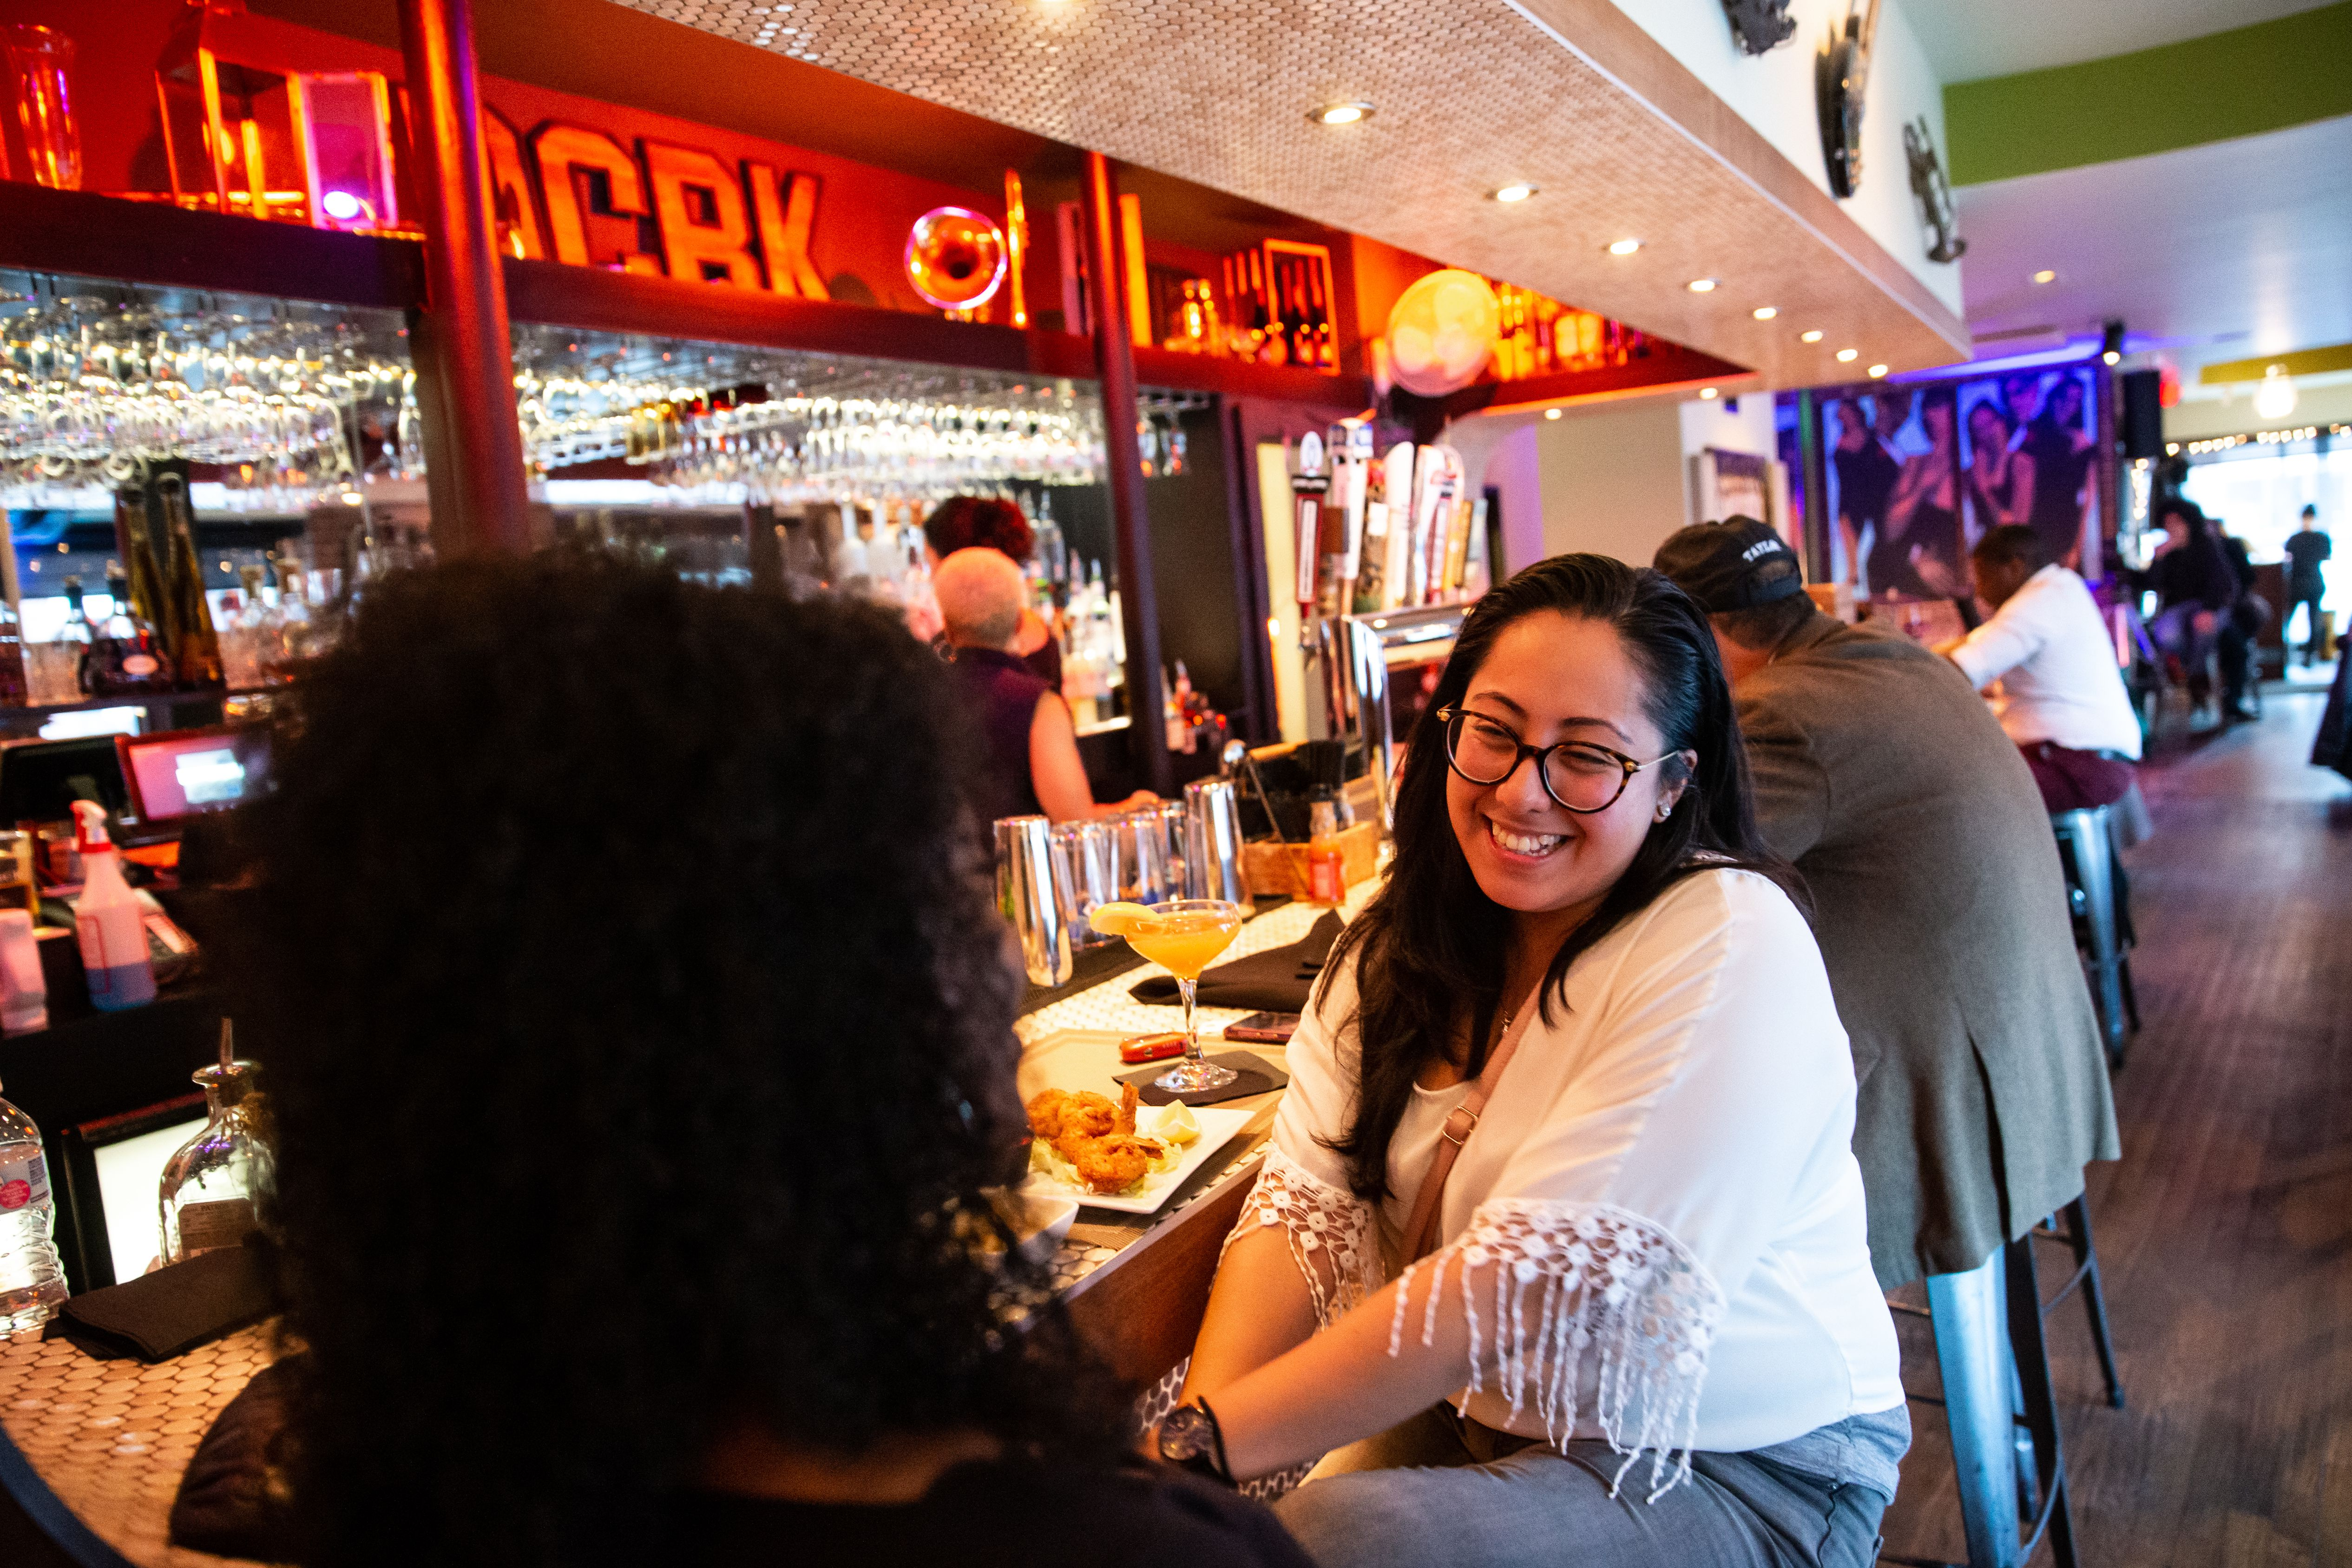 Our 56 favorite bars in Greater Boston and beyond - The